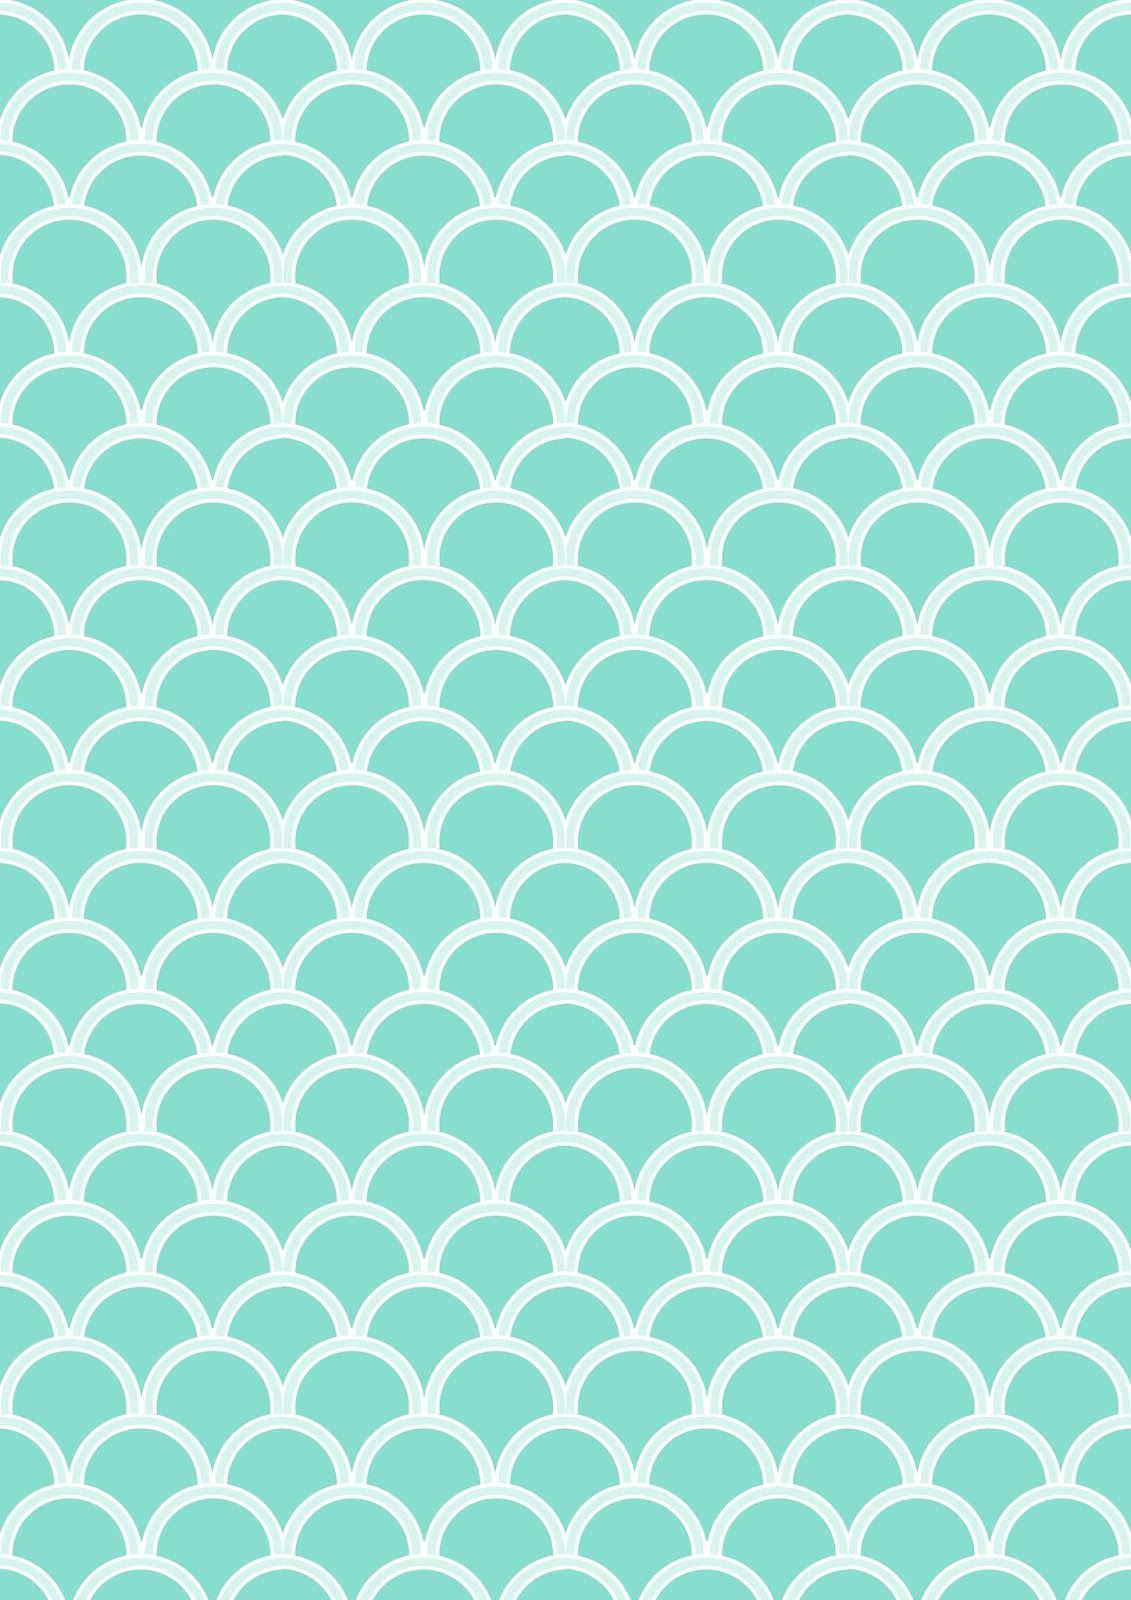 Free Digital Turquoise And White Scrapbooking Paper Ausruckbares